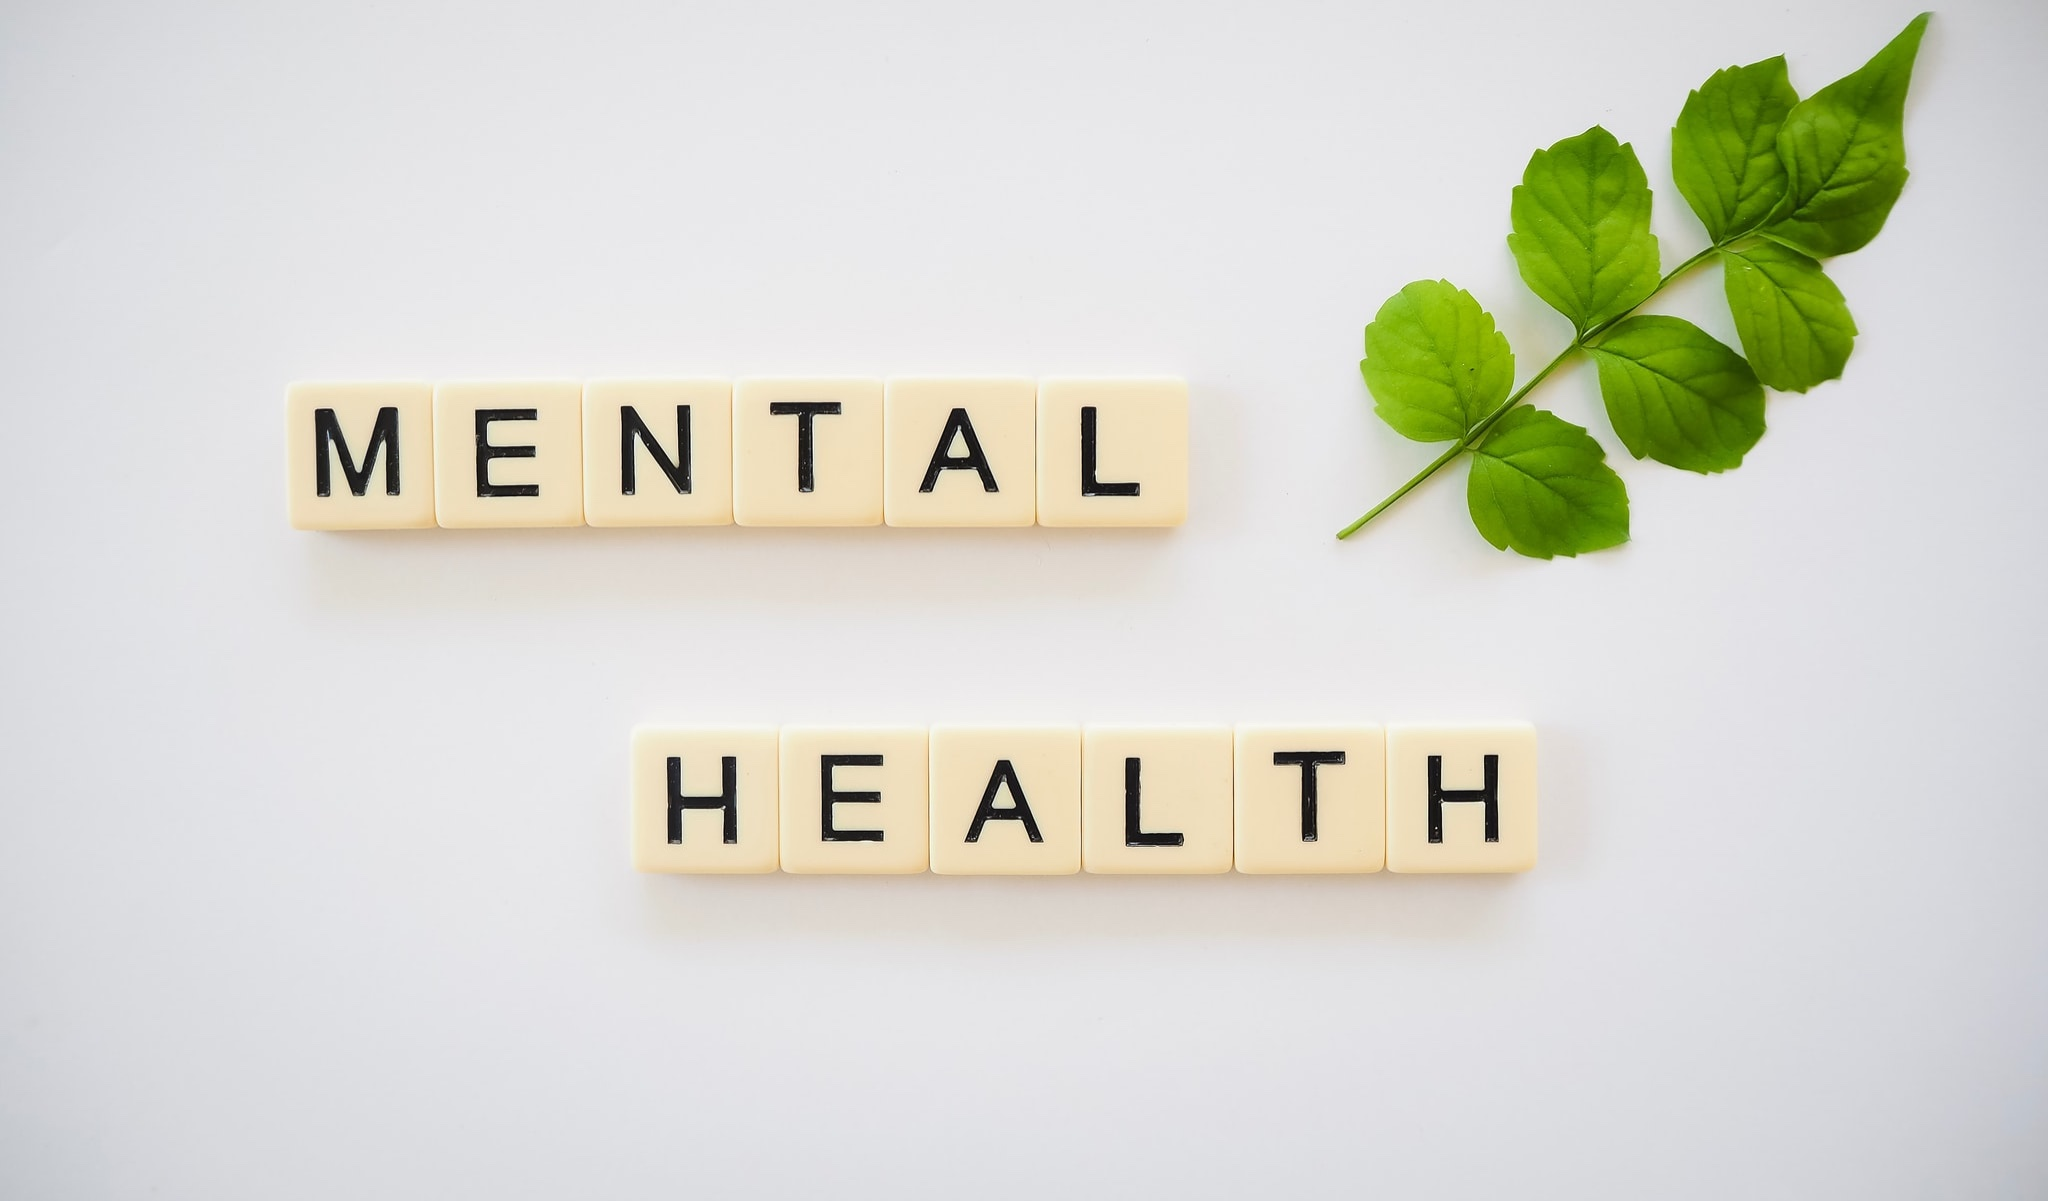 Mental Health written in san serif font on a scrabble pieces. There is a small branch with green leaves in the top right corner.